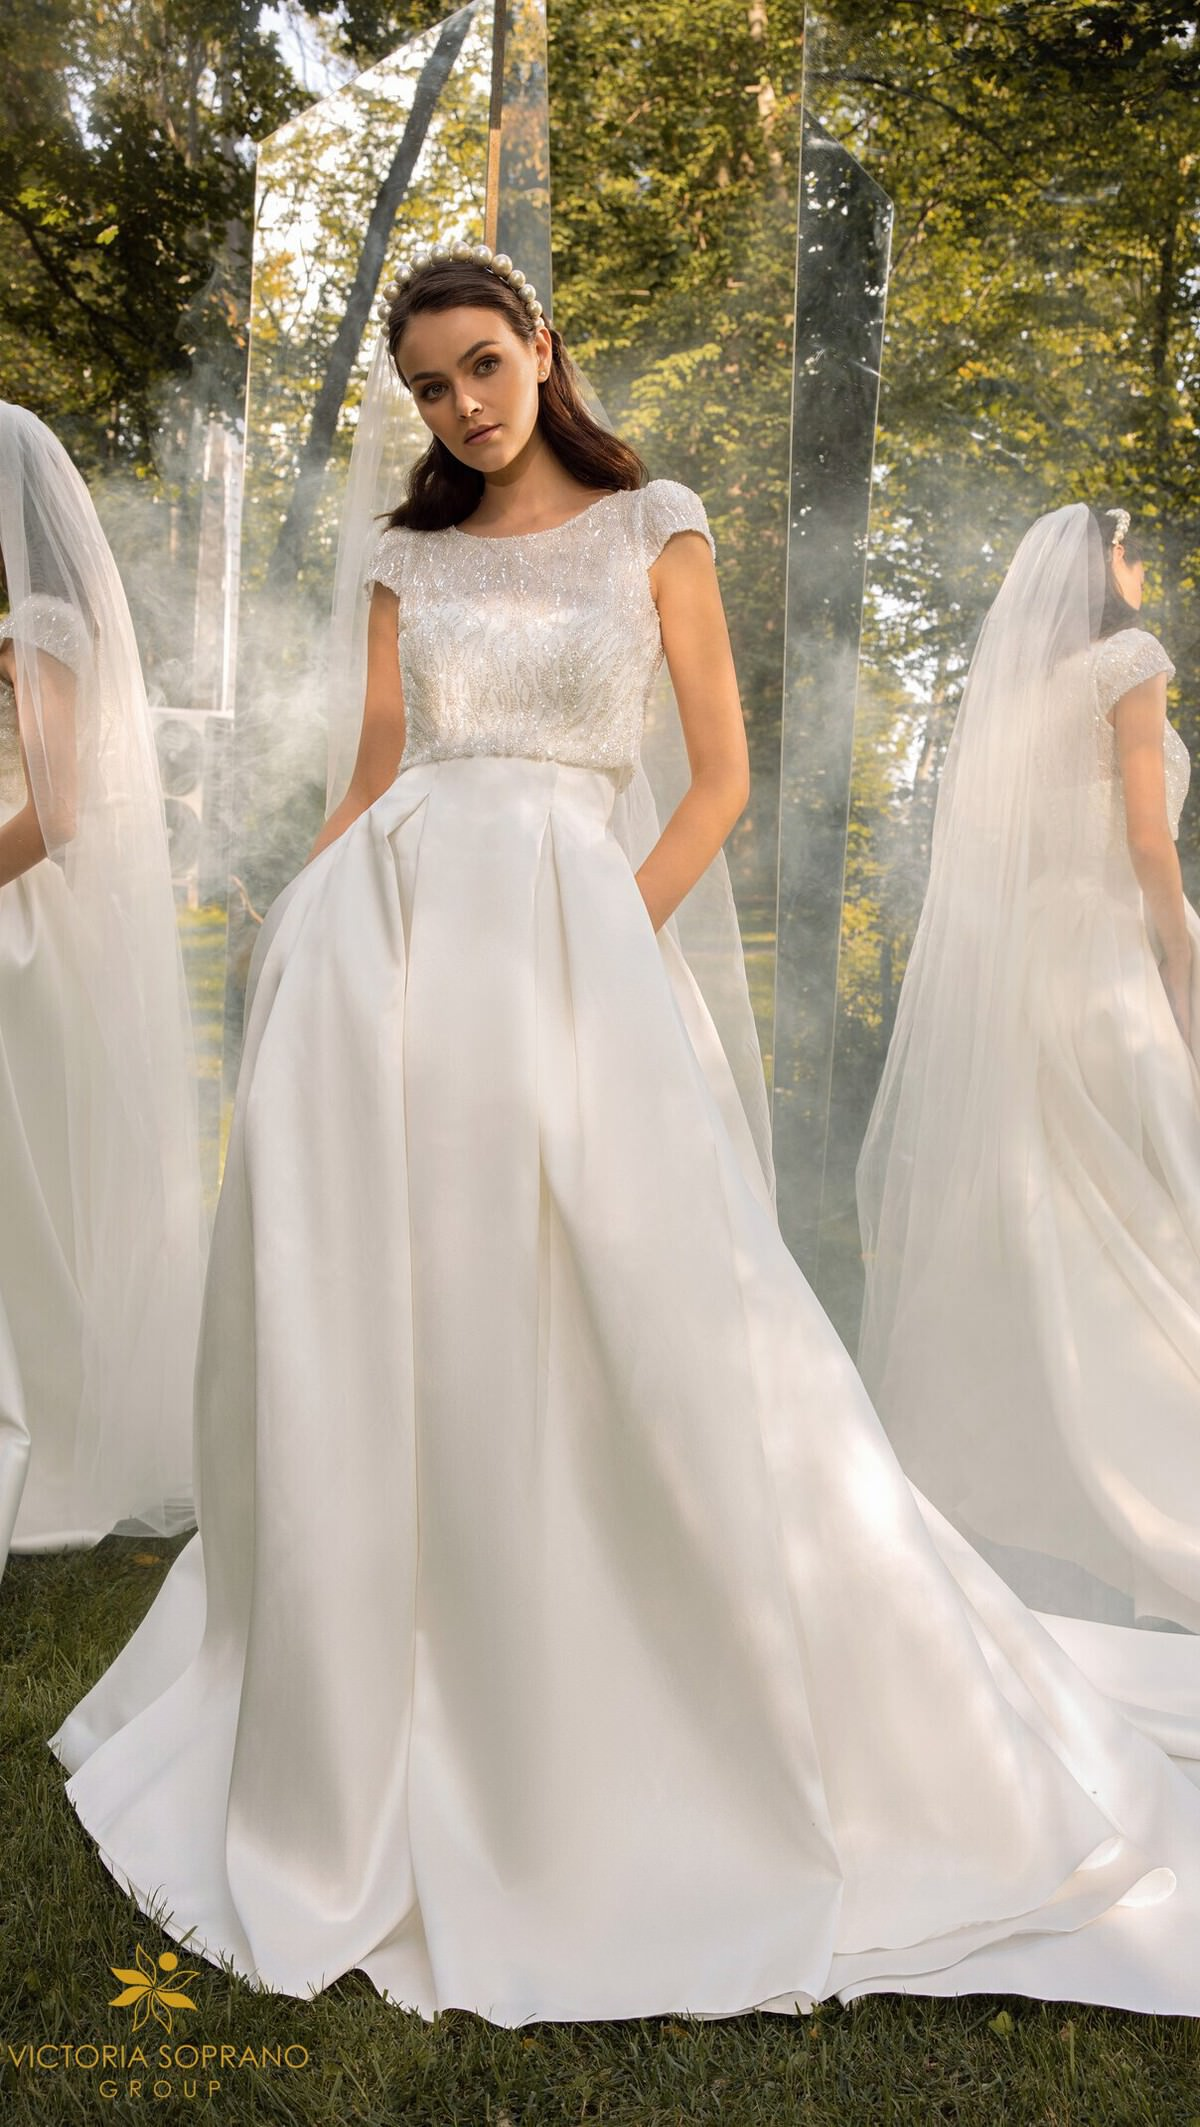 Vinatge Wedding dress with pockets by Victoria Soprano 2022 Bridal Collection